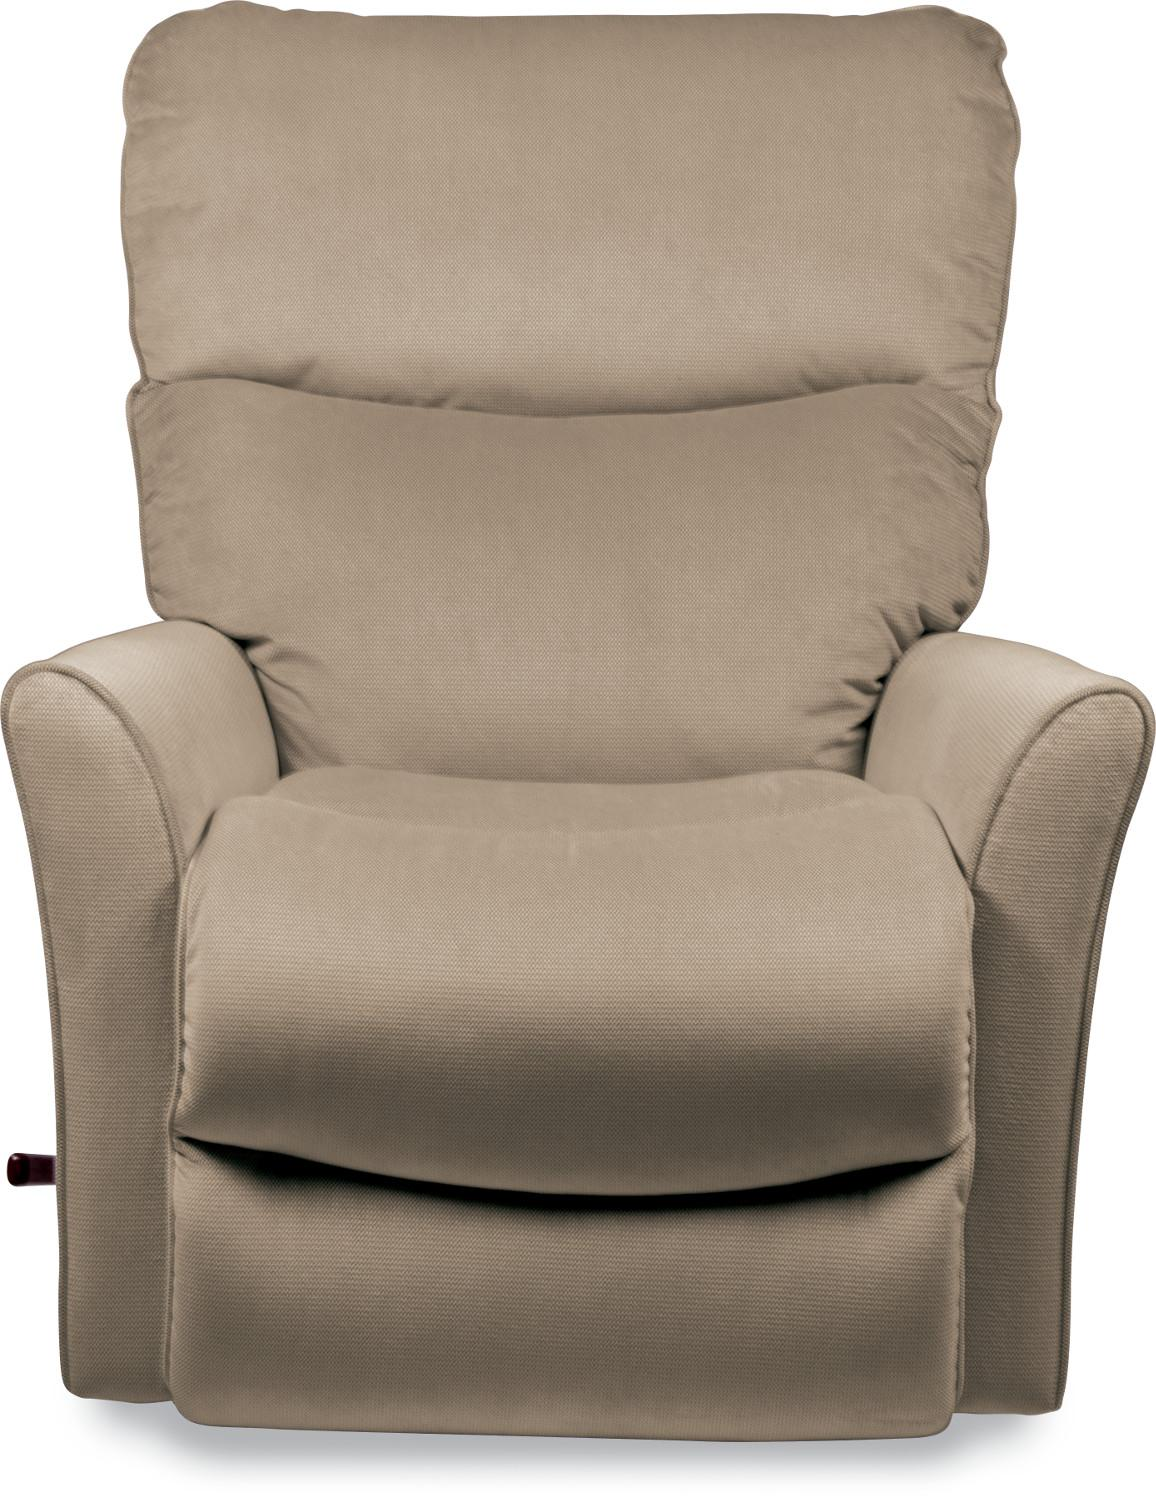 Rowan Small Scale Reclina Glider Swivel Recliner By La Z